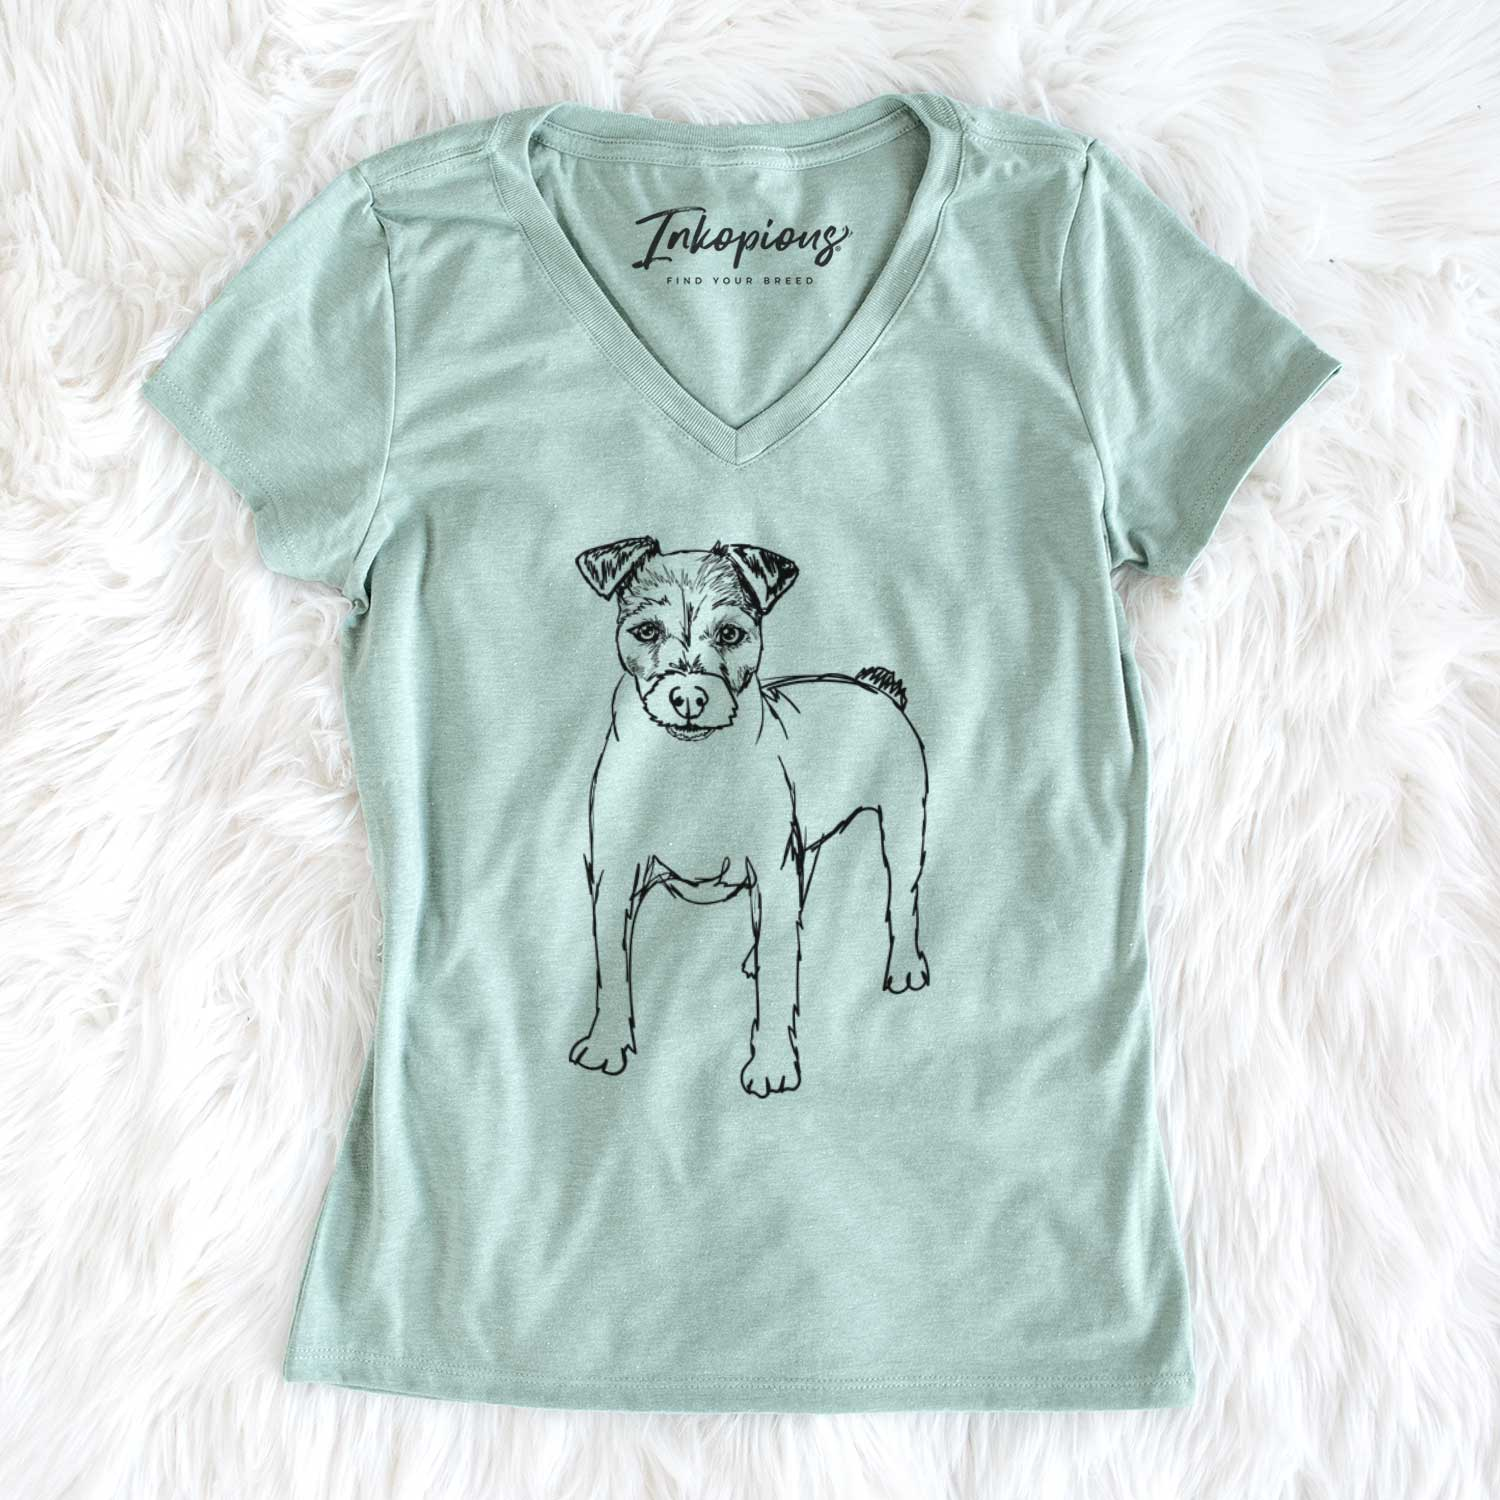 Doodled Lucky the Jack Russell Terrier - Women's Perfect V-neck Shirt